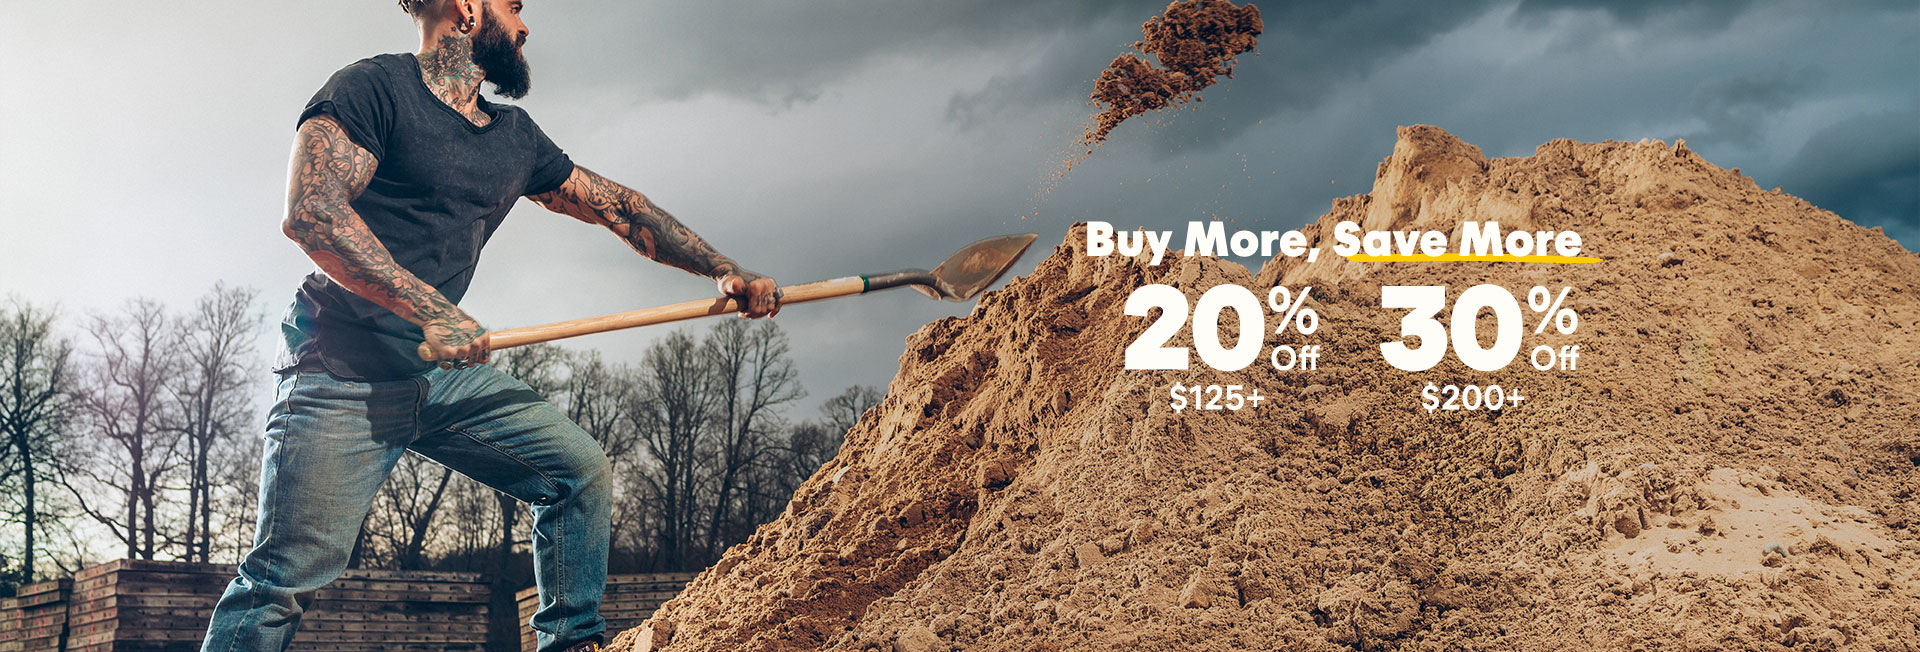 Buy More, Save More. 20% Off $125+, 30% Off $200+.